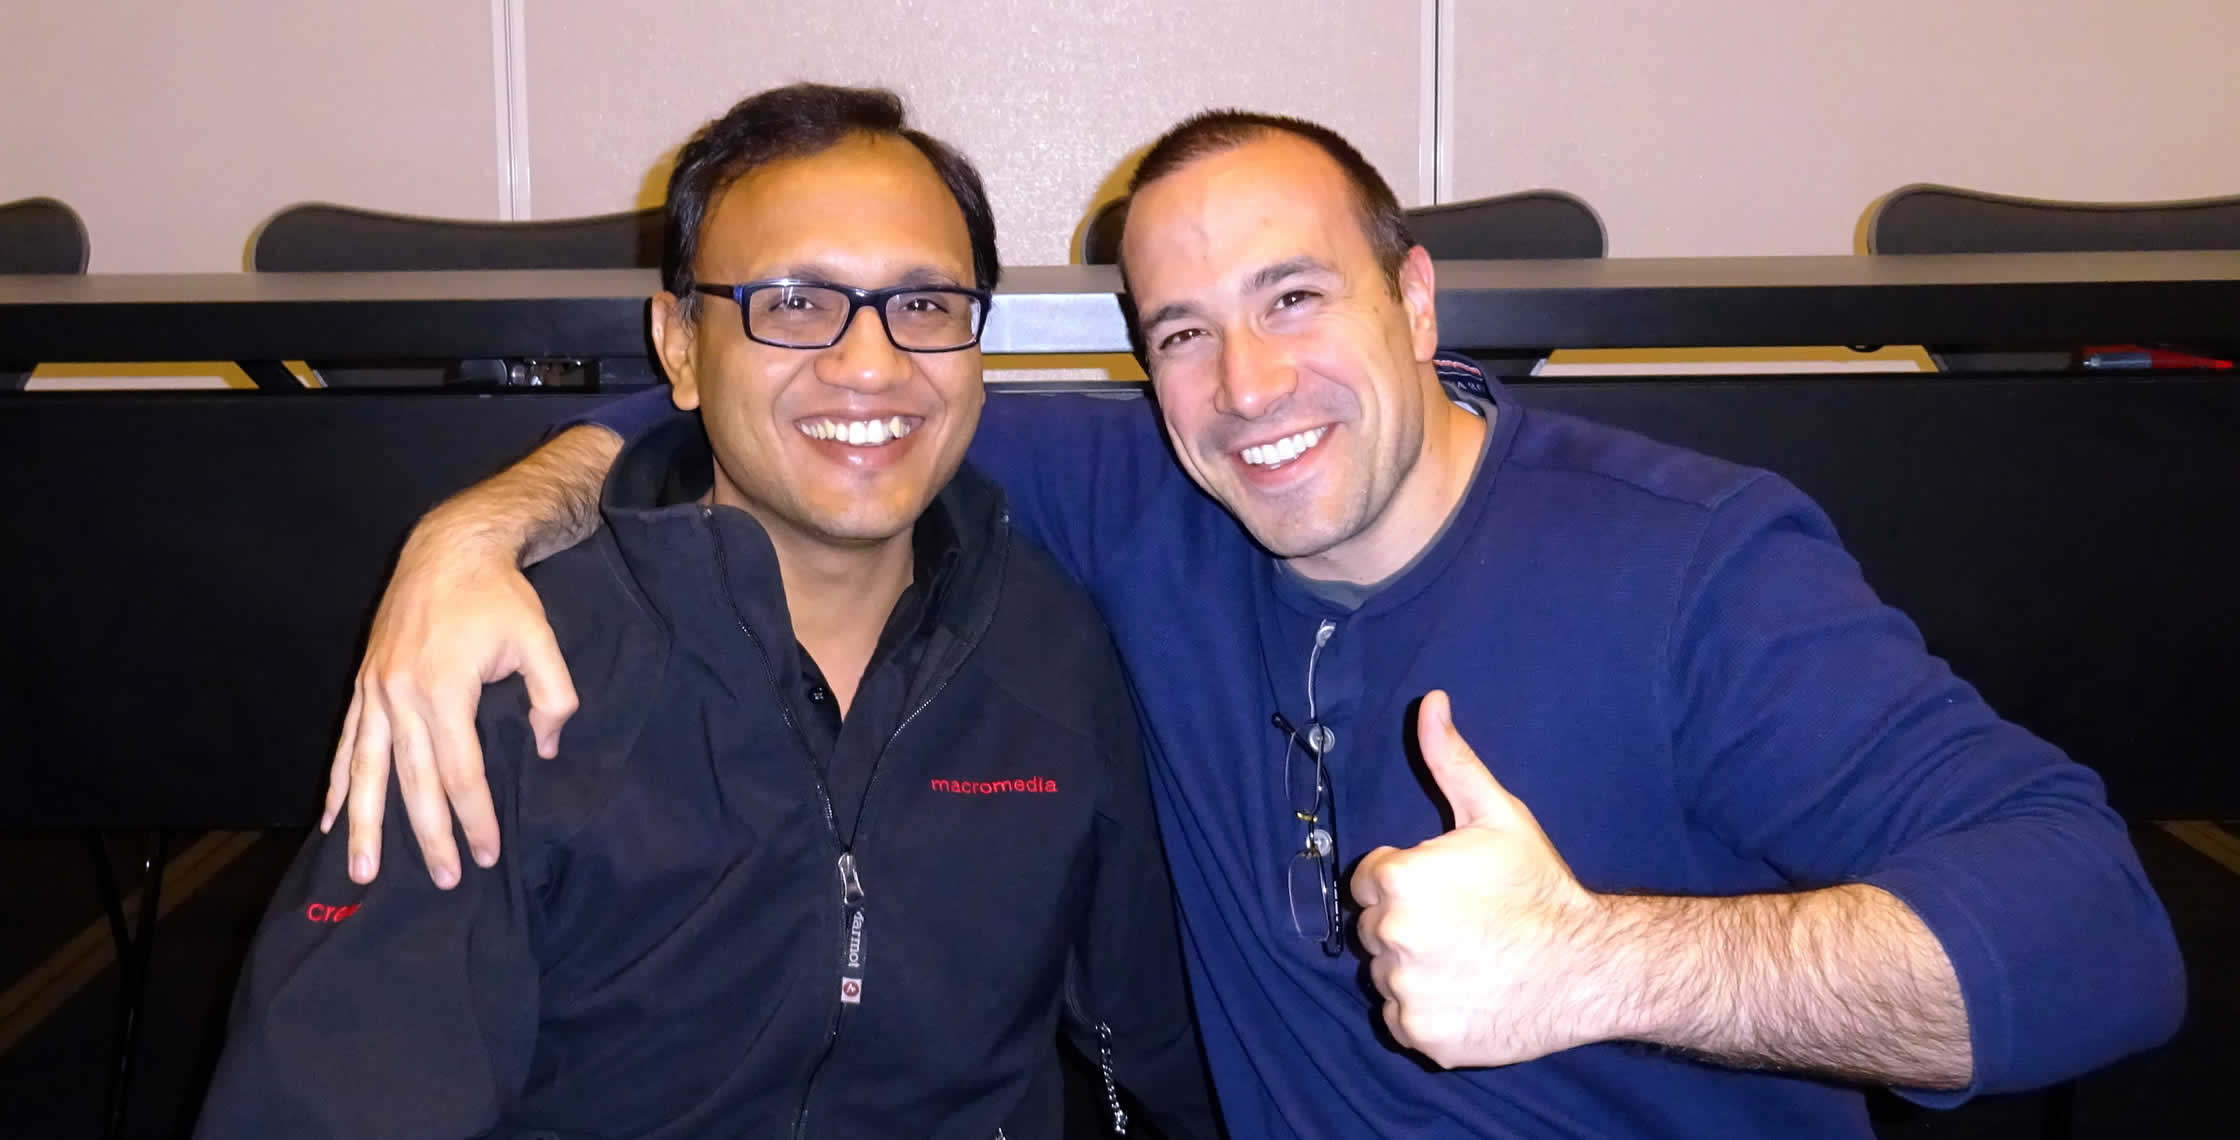 Ben Nadel at cf.Objective() 2014 (Bloomington, MN) with: Hemant Khandelwal